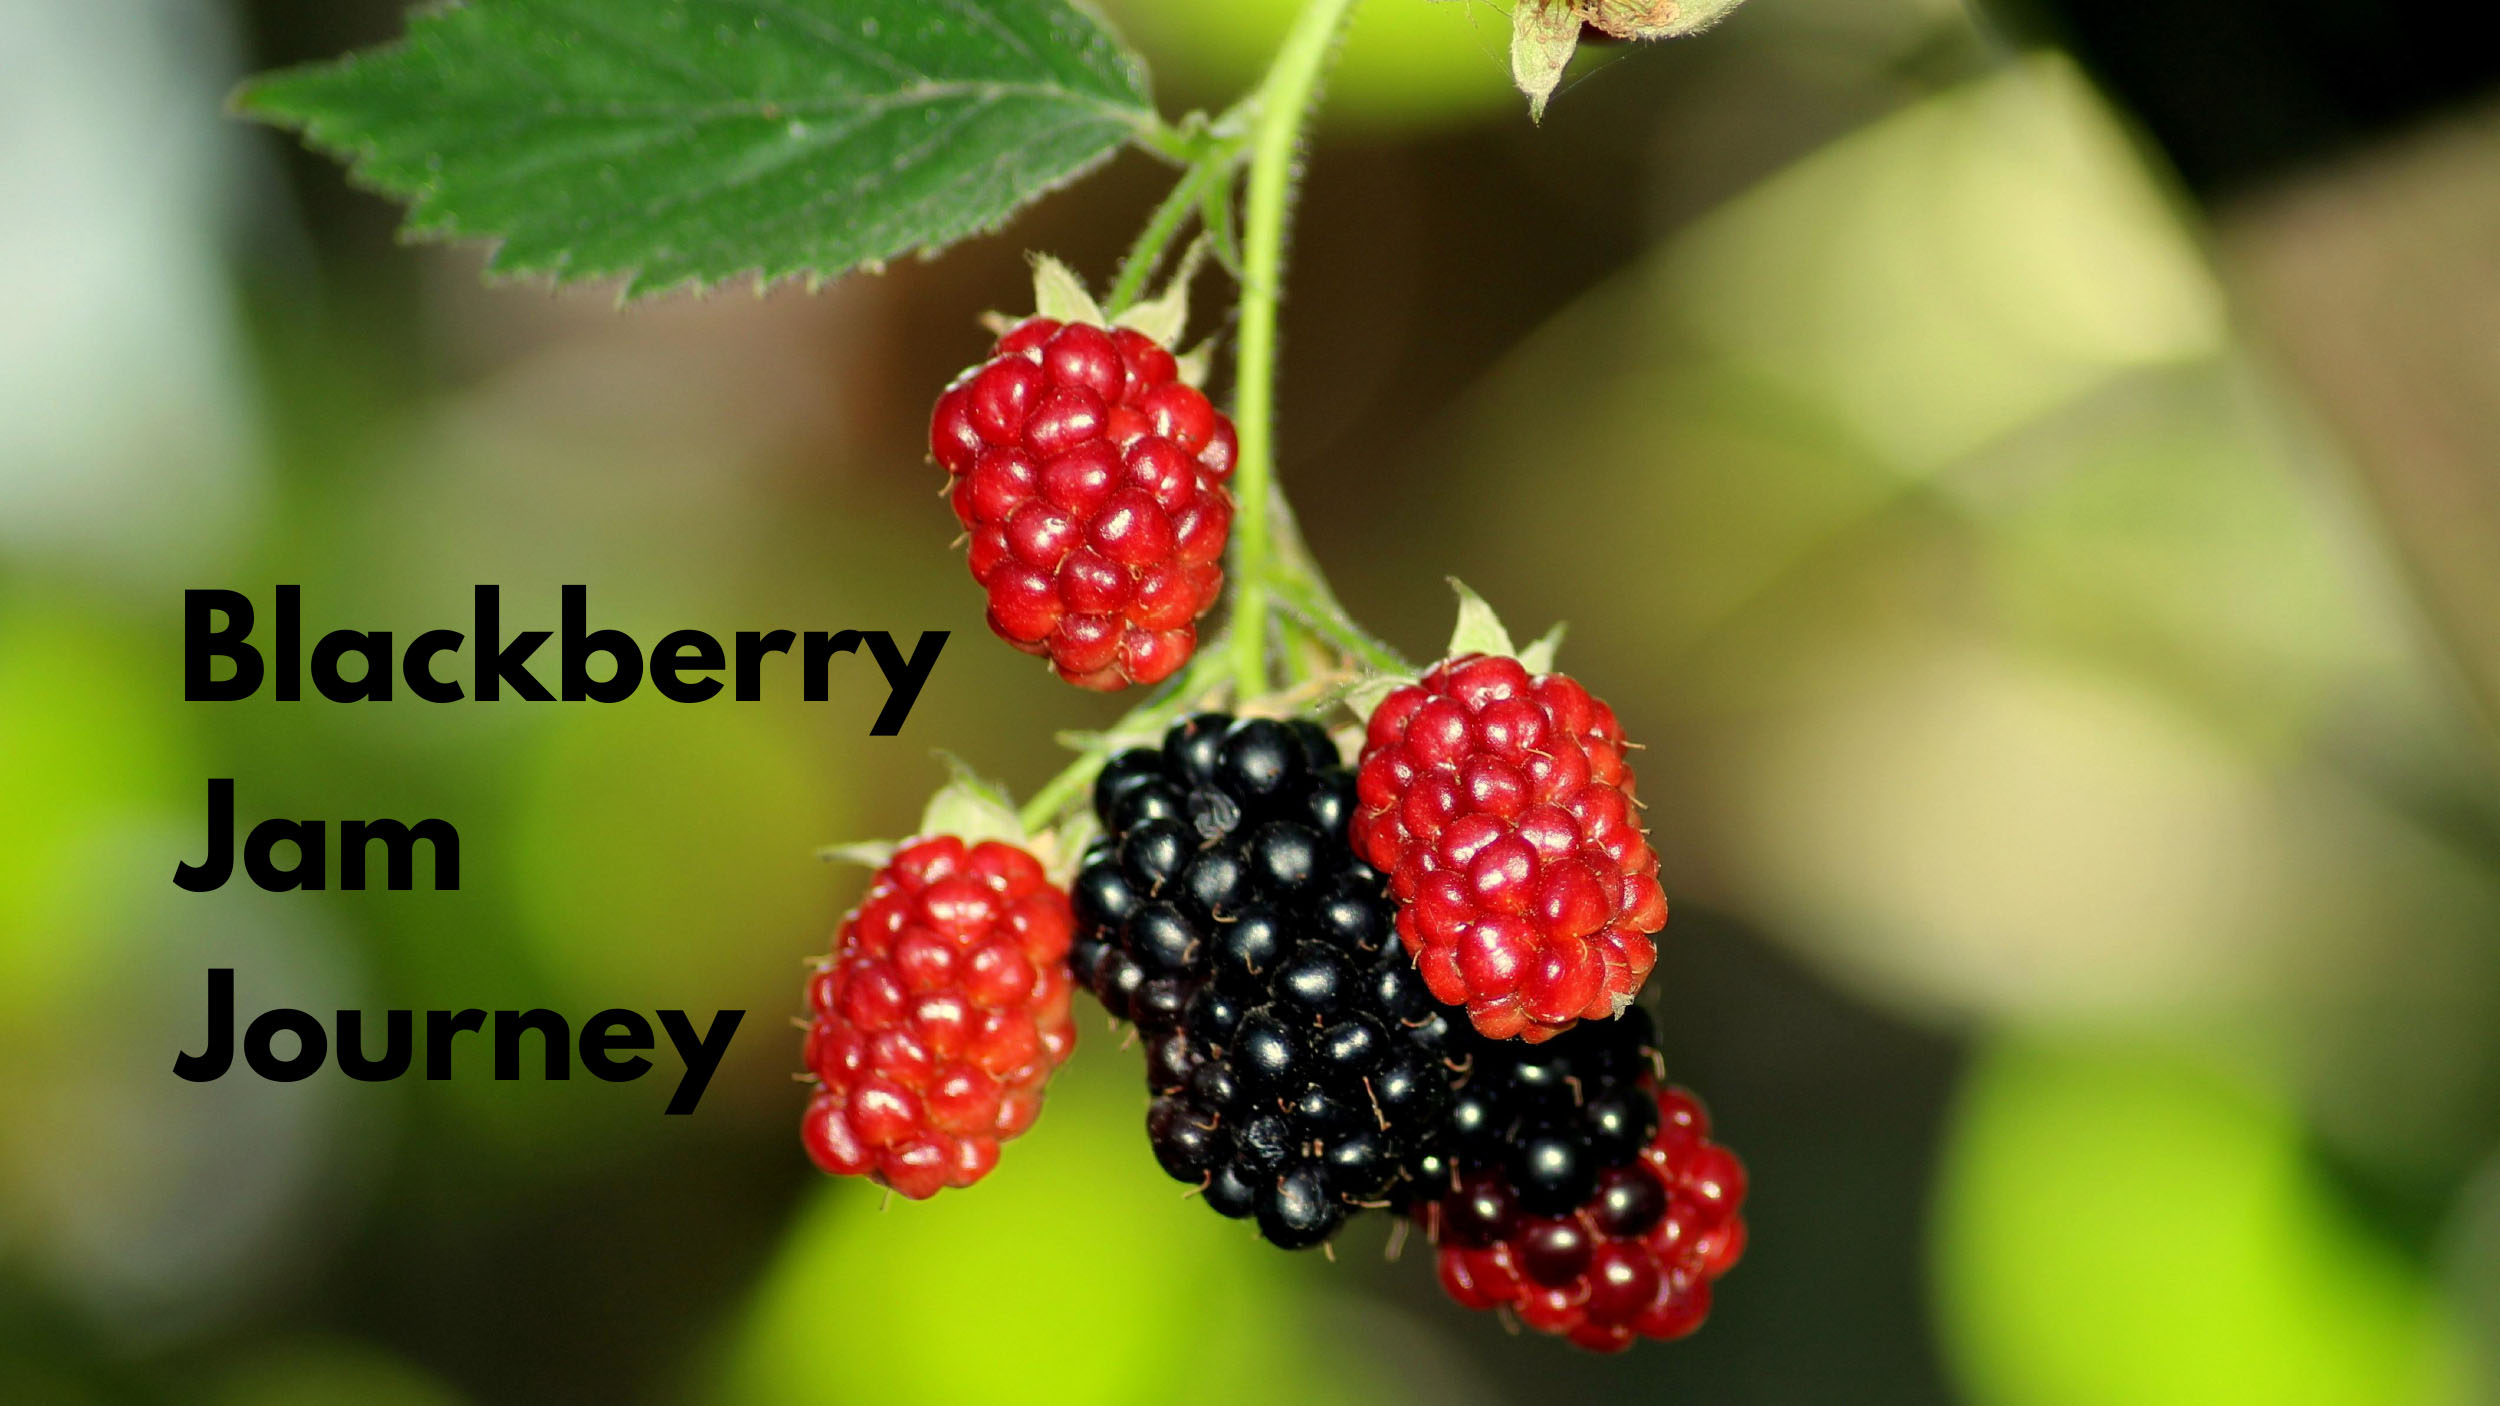 The Blackberry Jam Journey